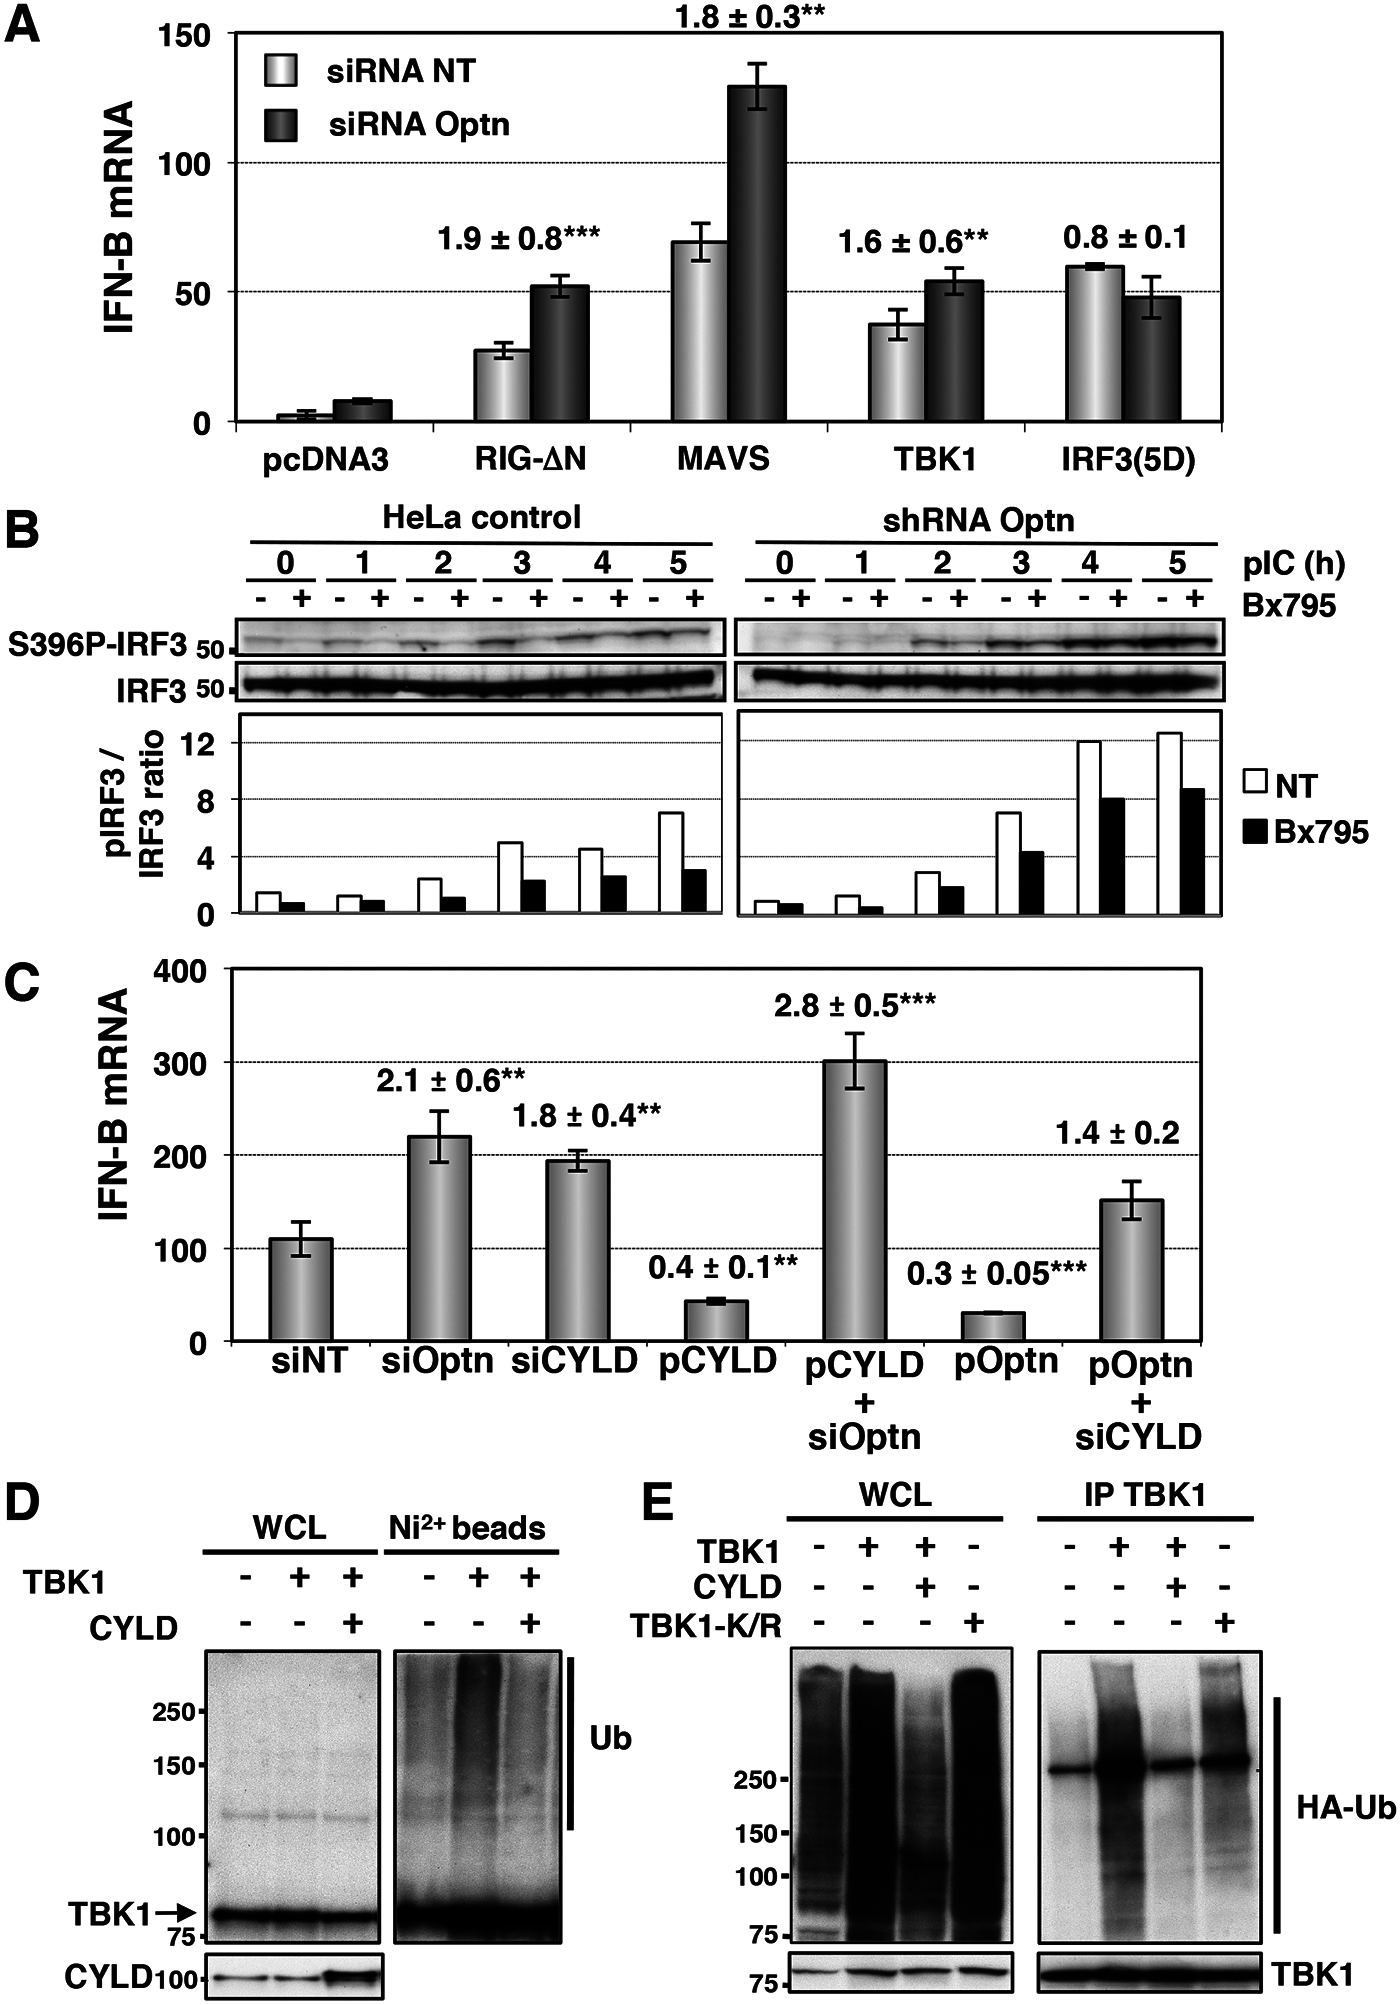 Optn inhibitory effect requires CYLD and targets TBK1 ubiquitination.